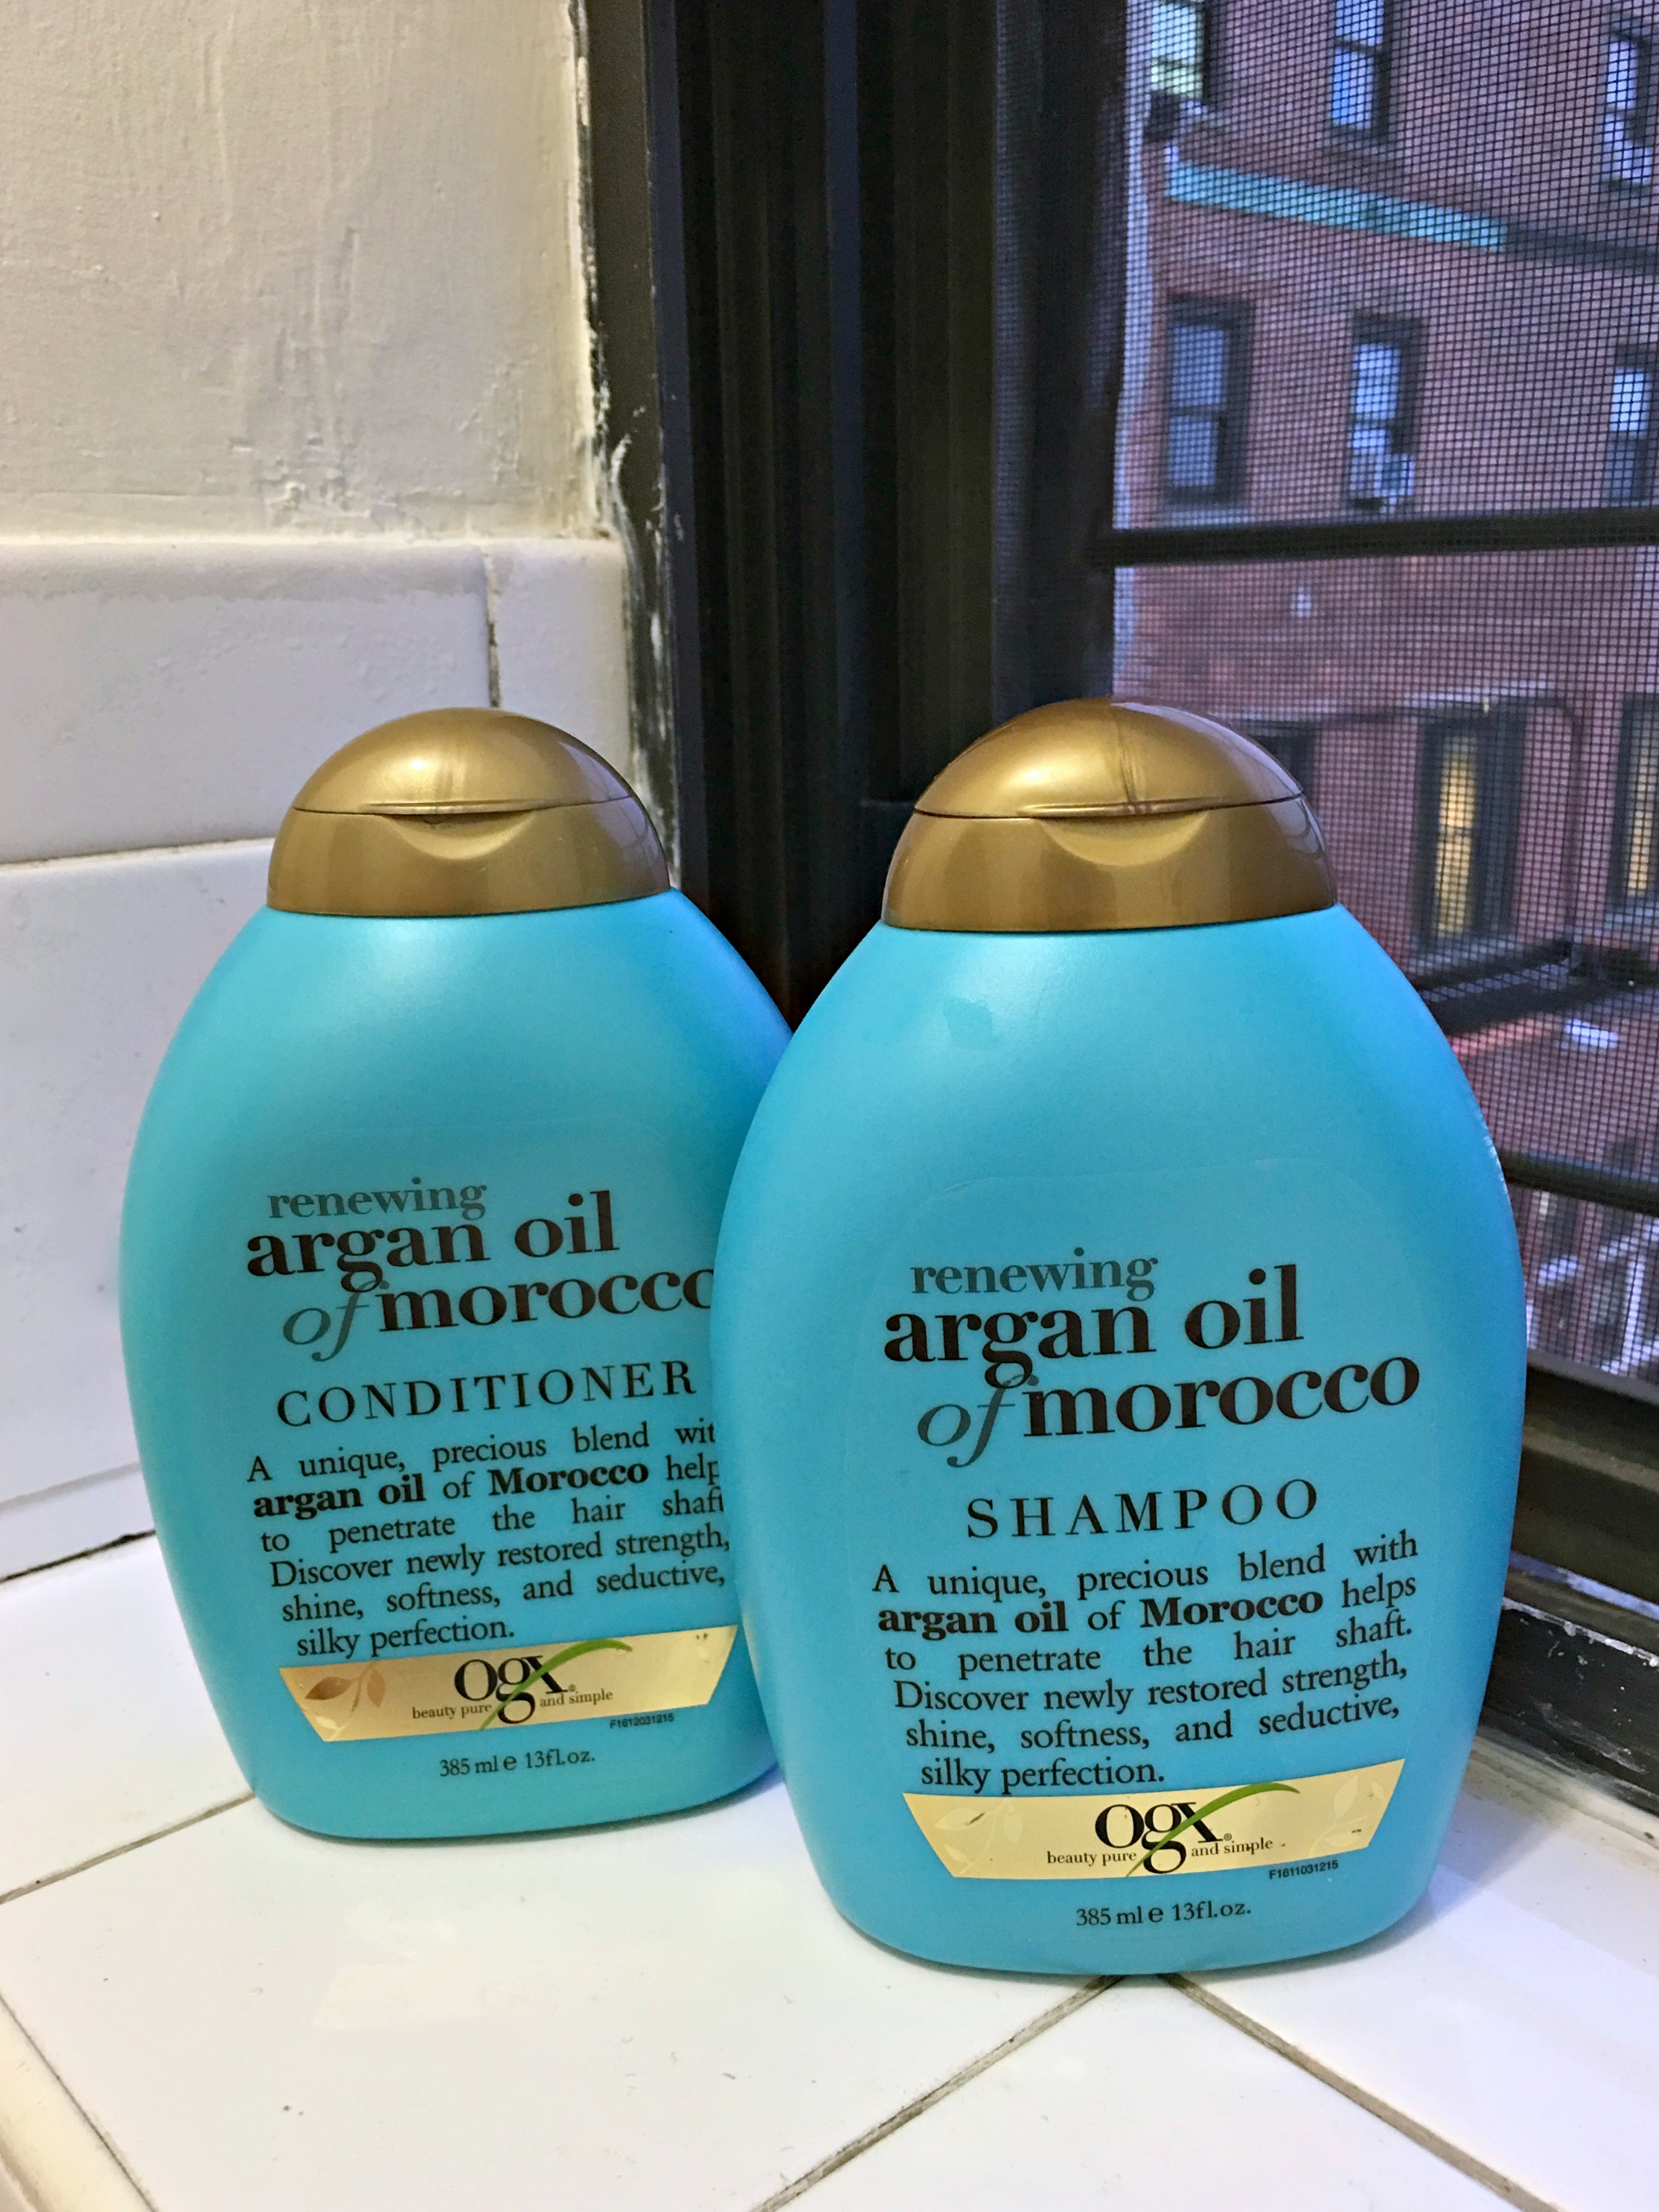 argan oil of morocco shampoo and conditioner